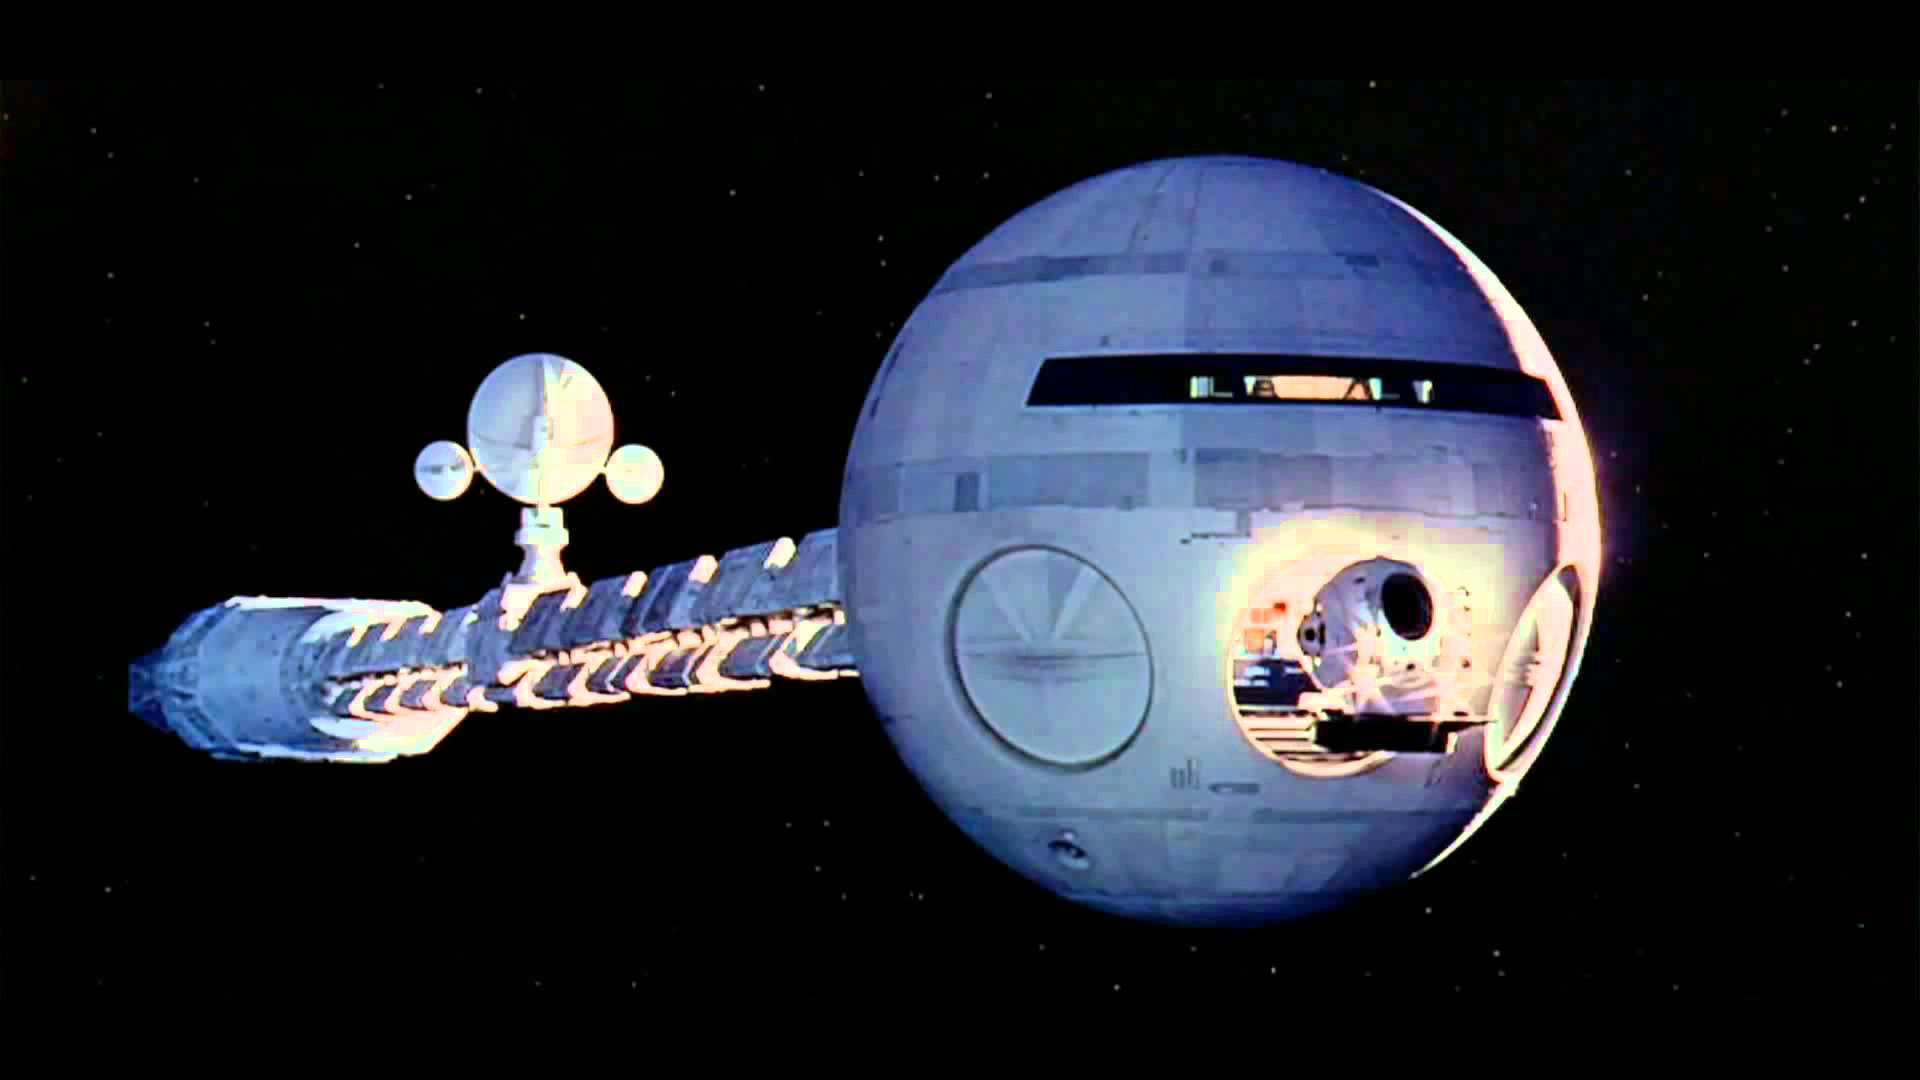 The 25 most iconic sci-fi spaceships, as chosen by a